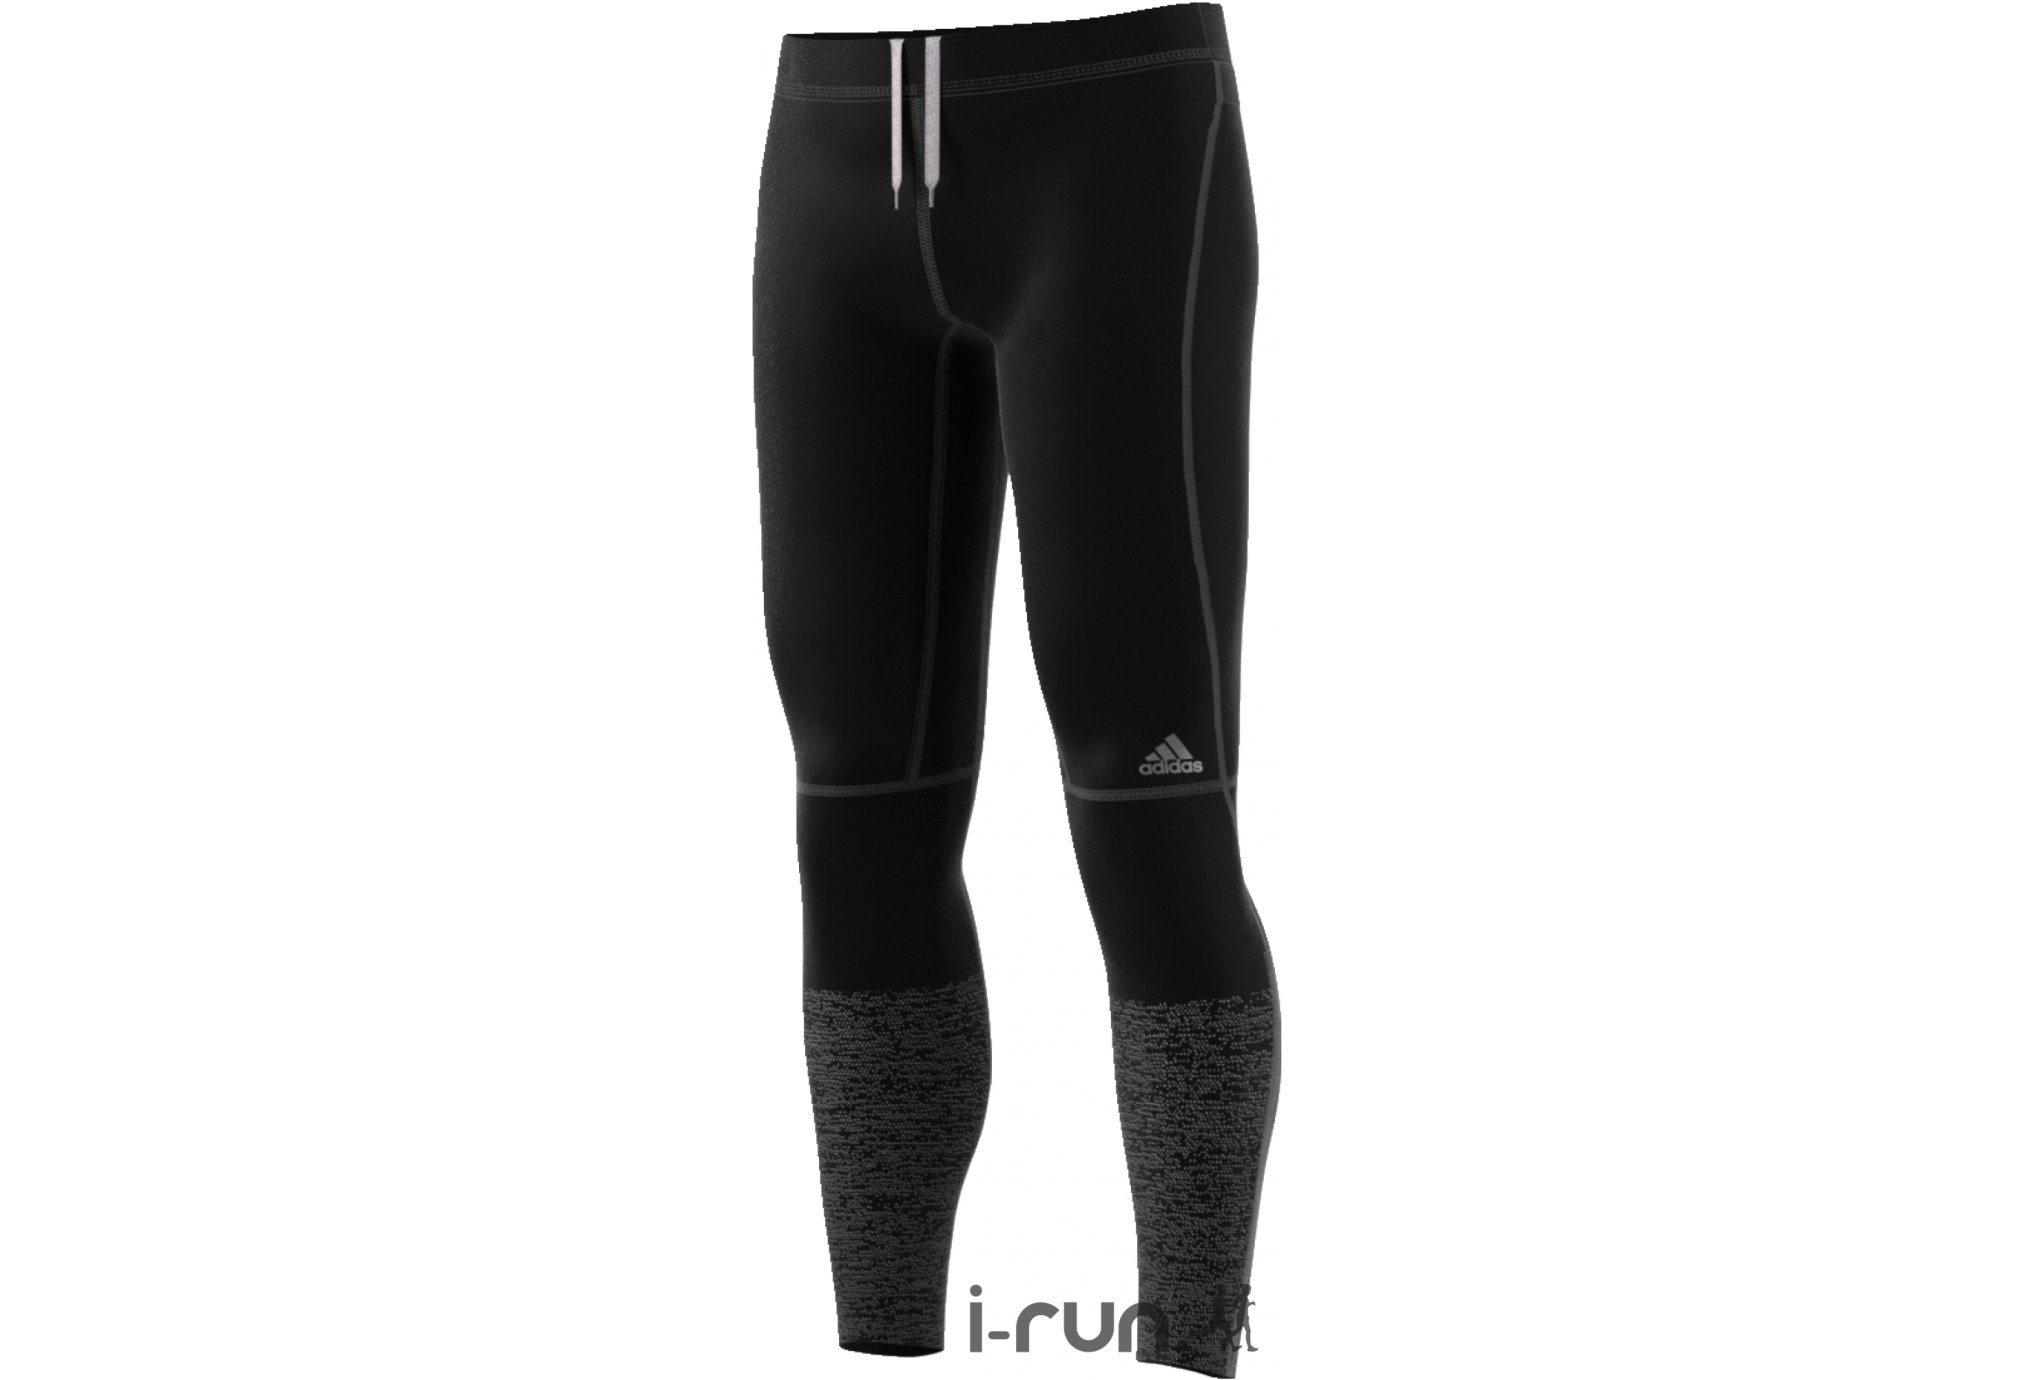 Adidas Collant supernova m vêtement running homme